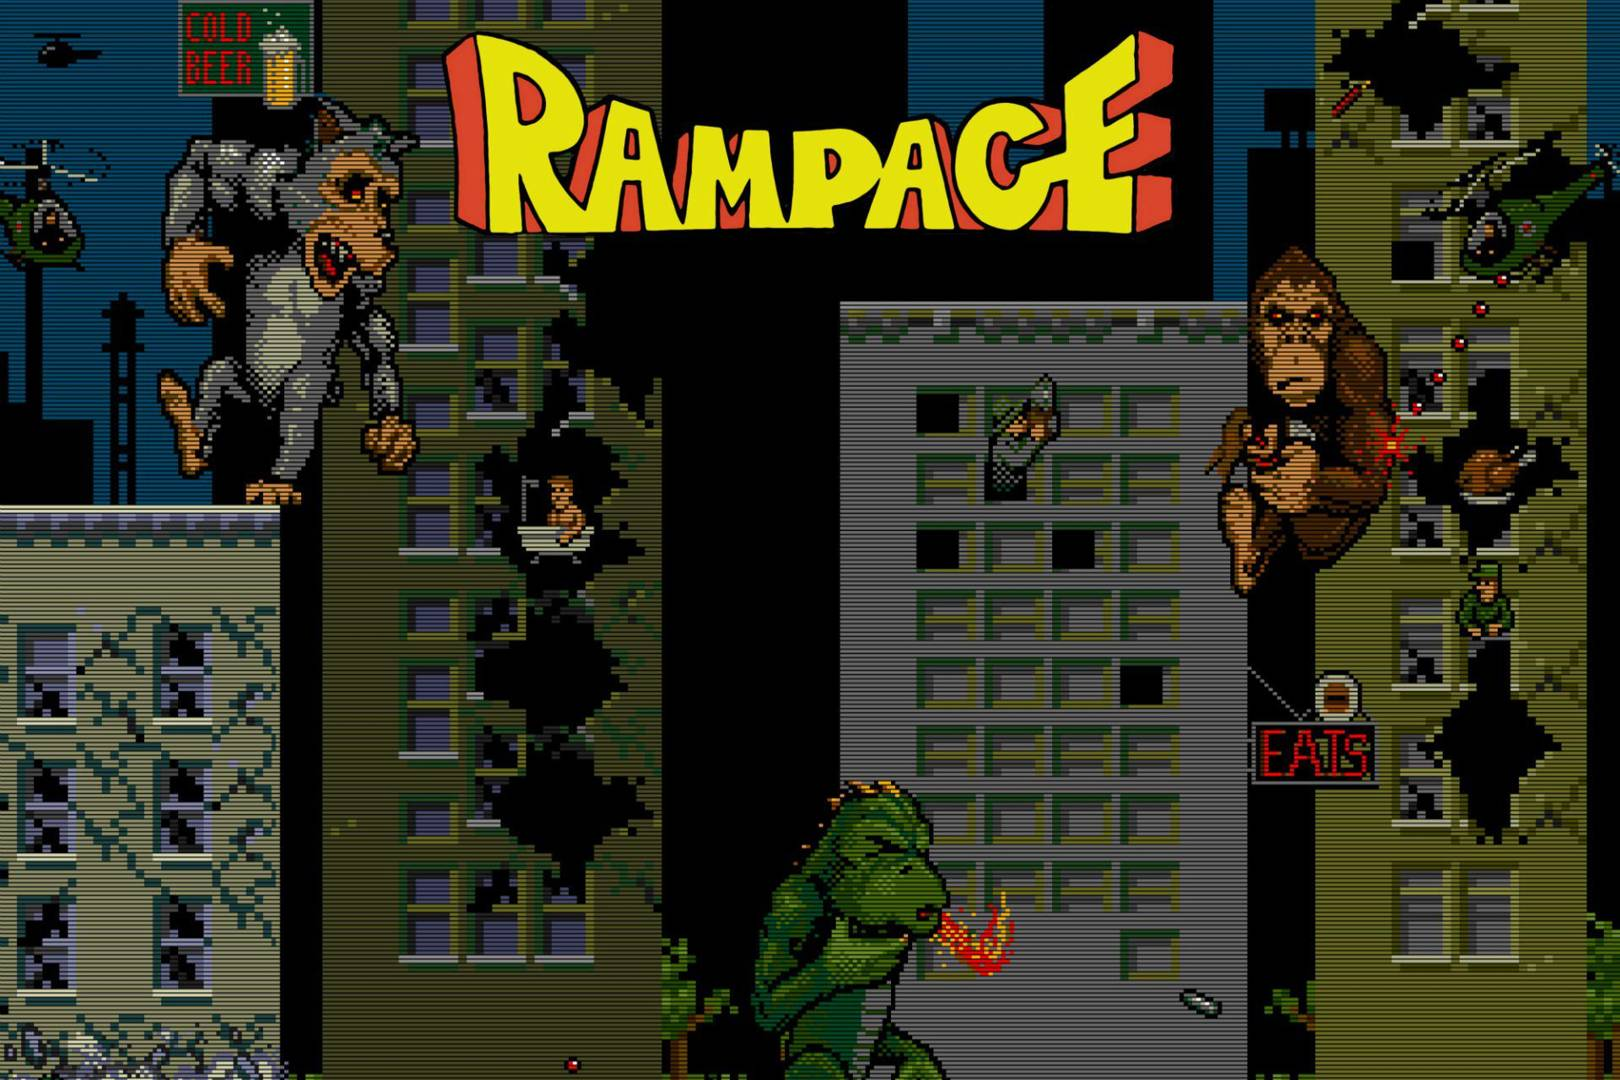 The Rock Bringing Arcade Game Rampage To Movie Screens Wired Uk